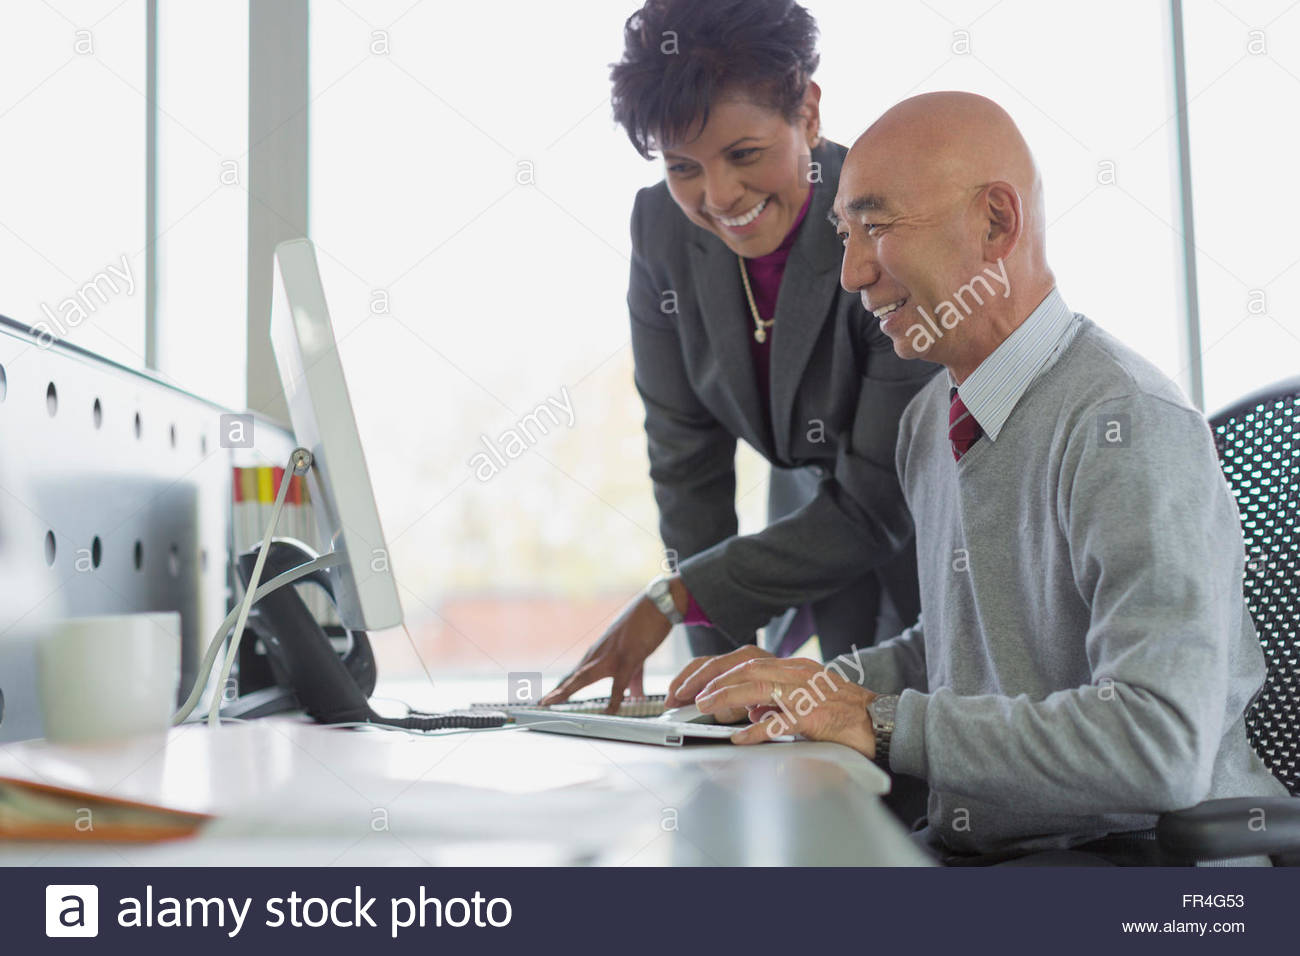 Co-workers smiling while looking at desktop computer. - Stock Image